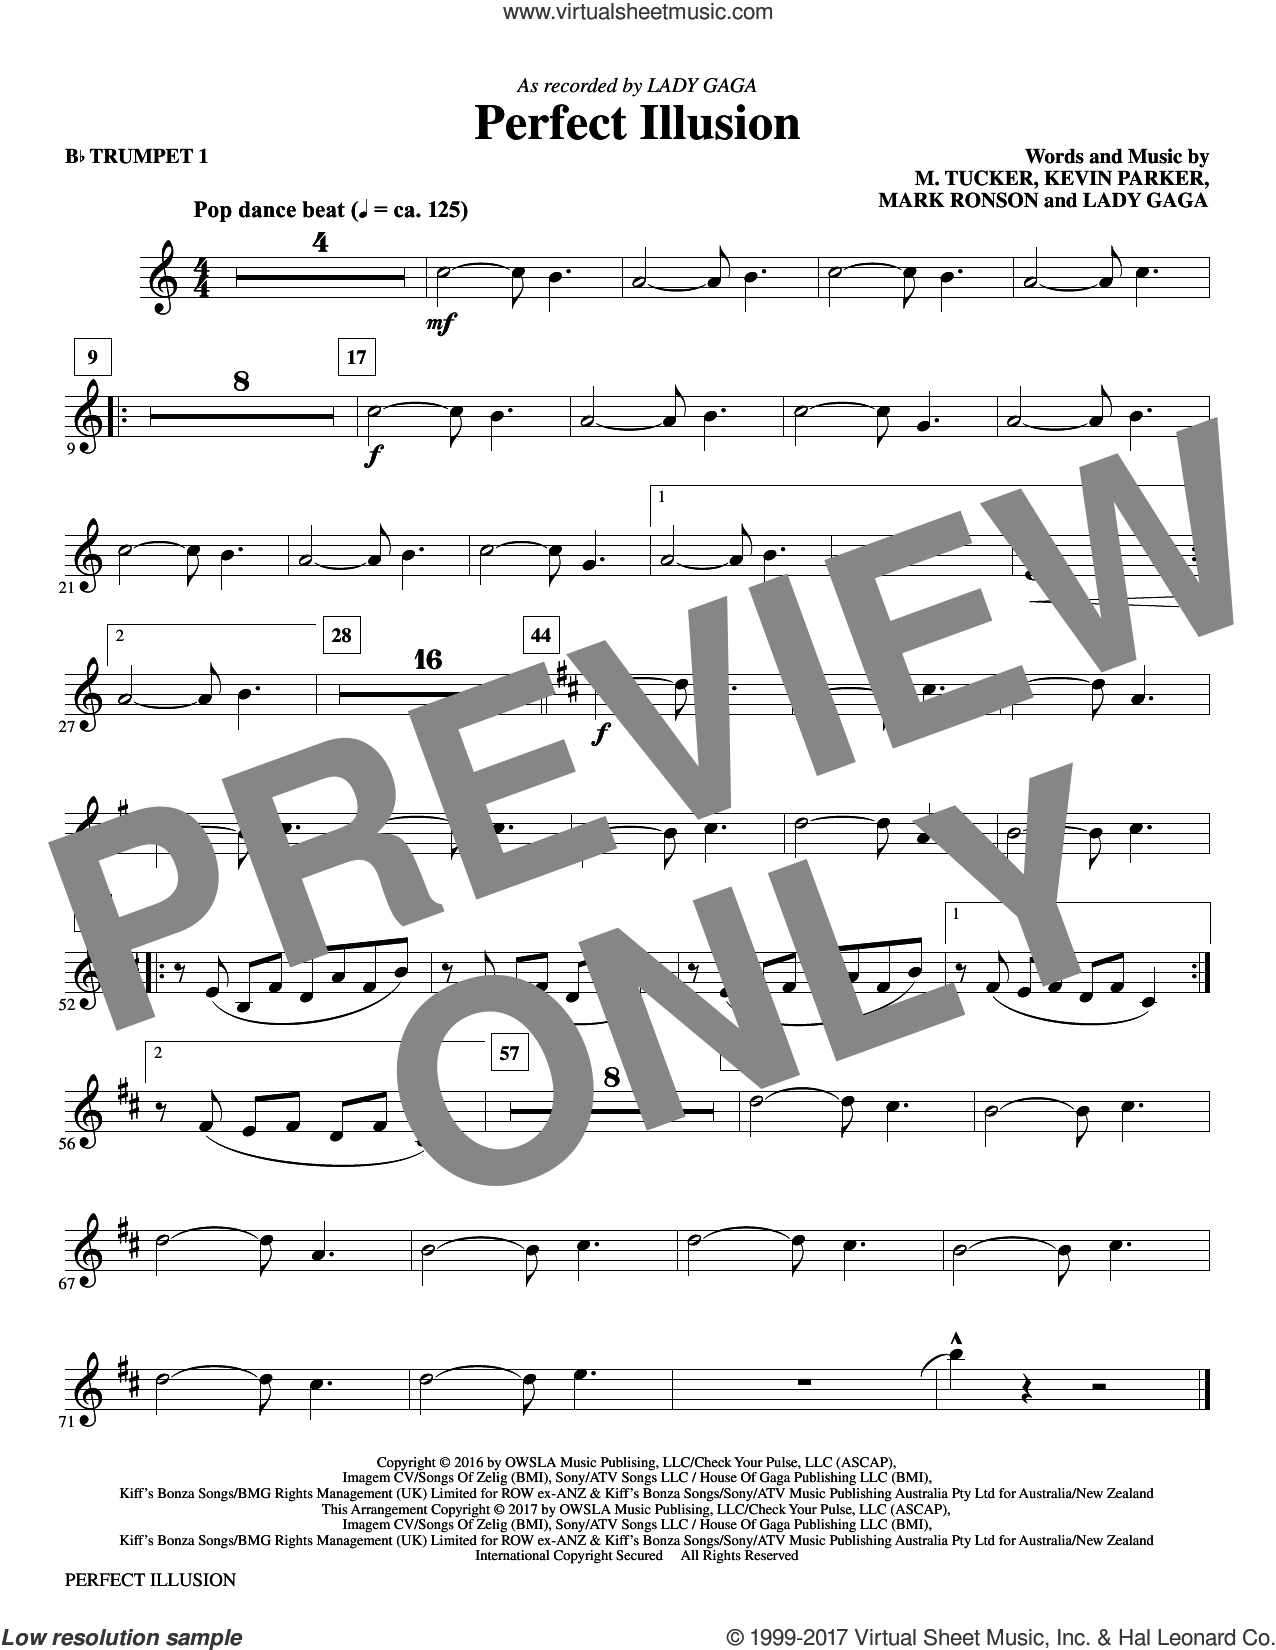 Perfect Illusion (complete set of parts) sheet music for orchestra/band by Mac Huff, Kevin Parker, Lady Gaga, Mark Ronson and Michael Tucker, intermediate skill level